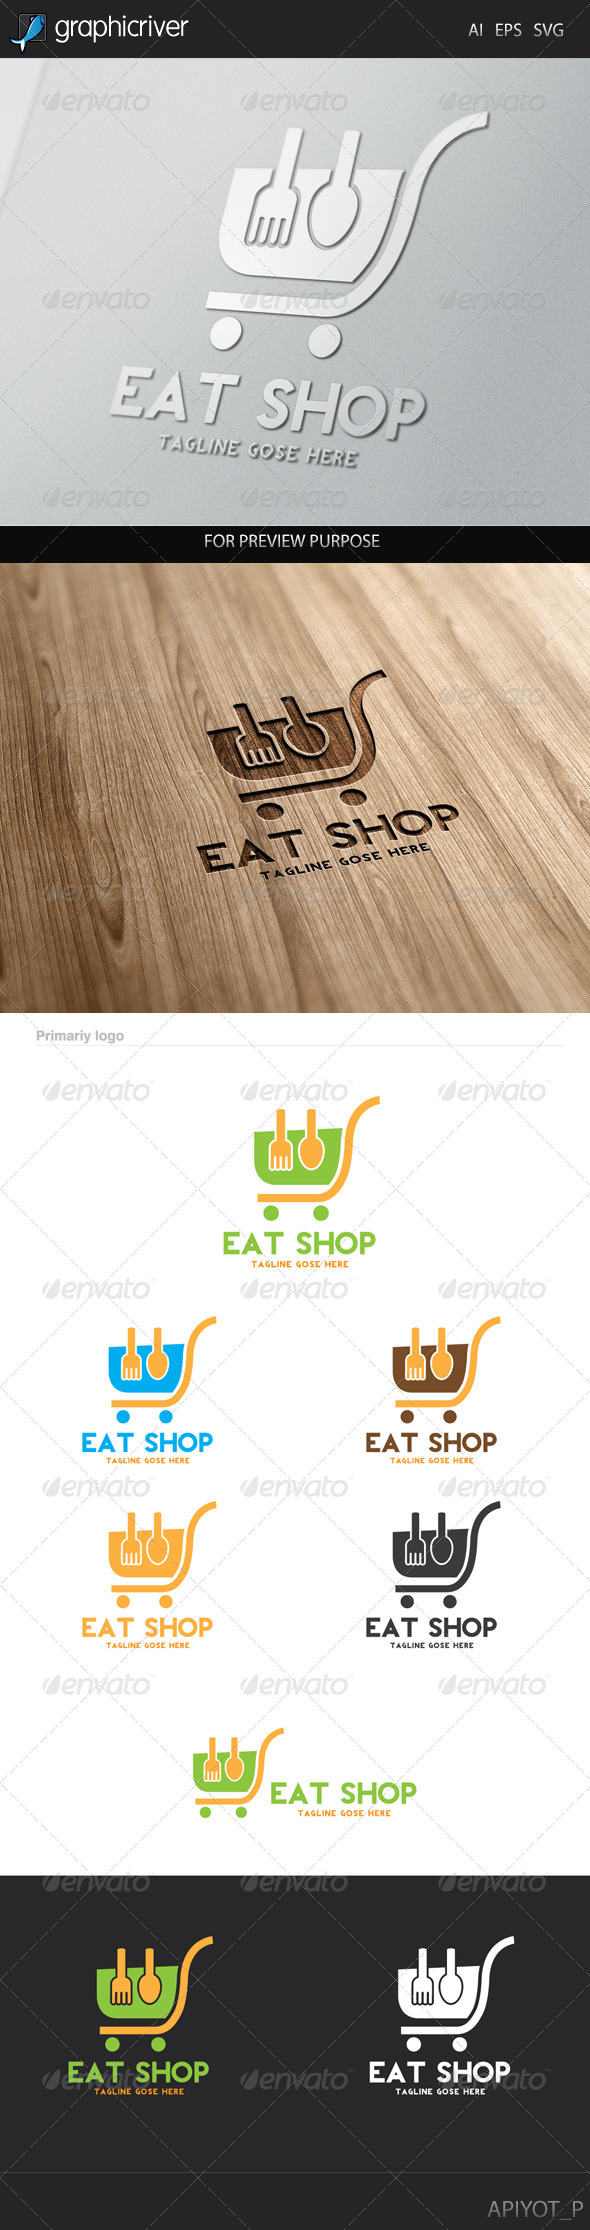 GraphicRiver Eat Shop Logo 8241908